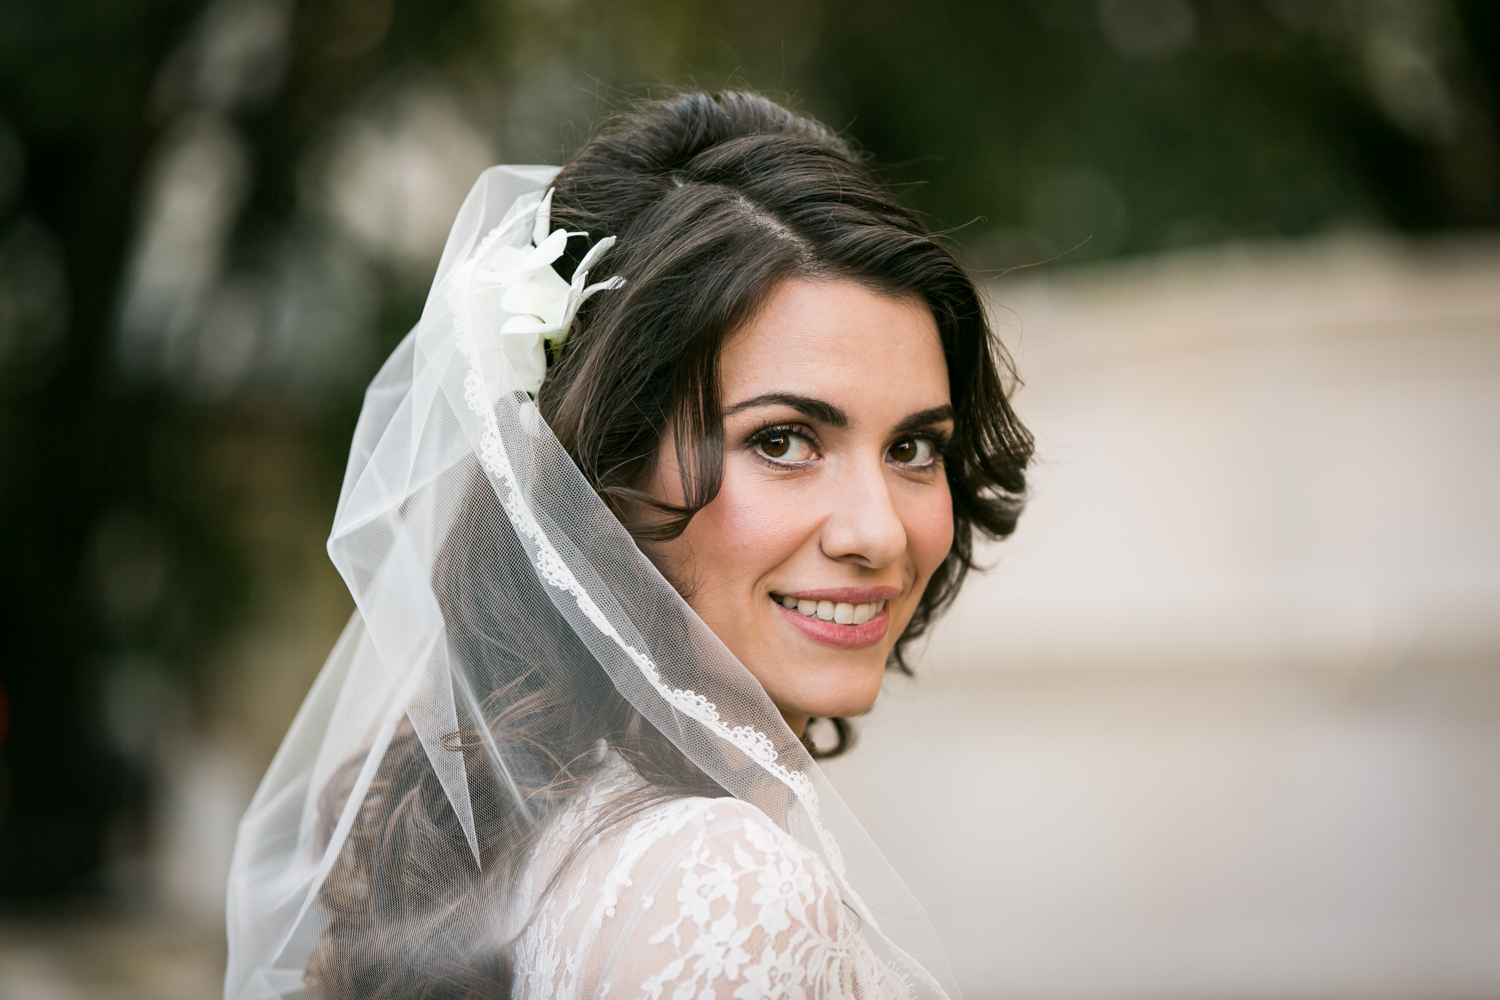 Portrait of bride wearing veil looking over shoulder